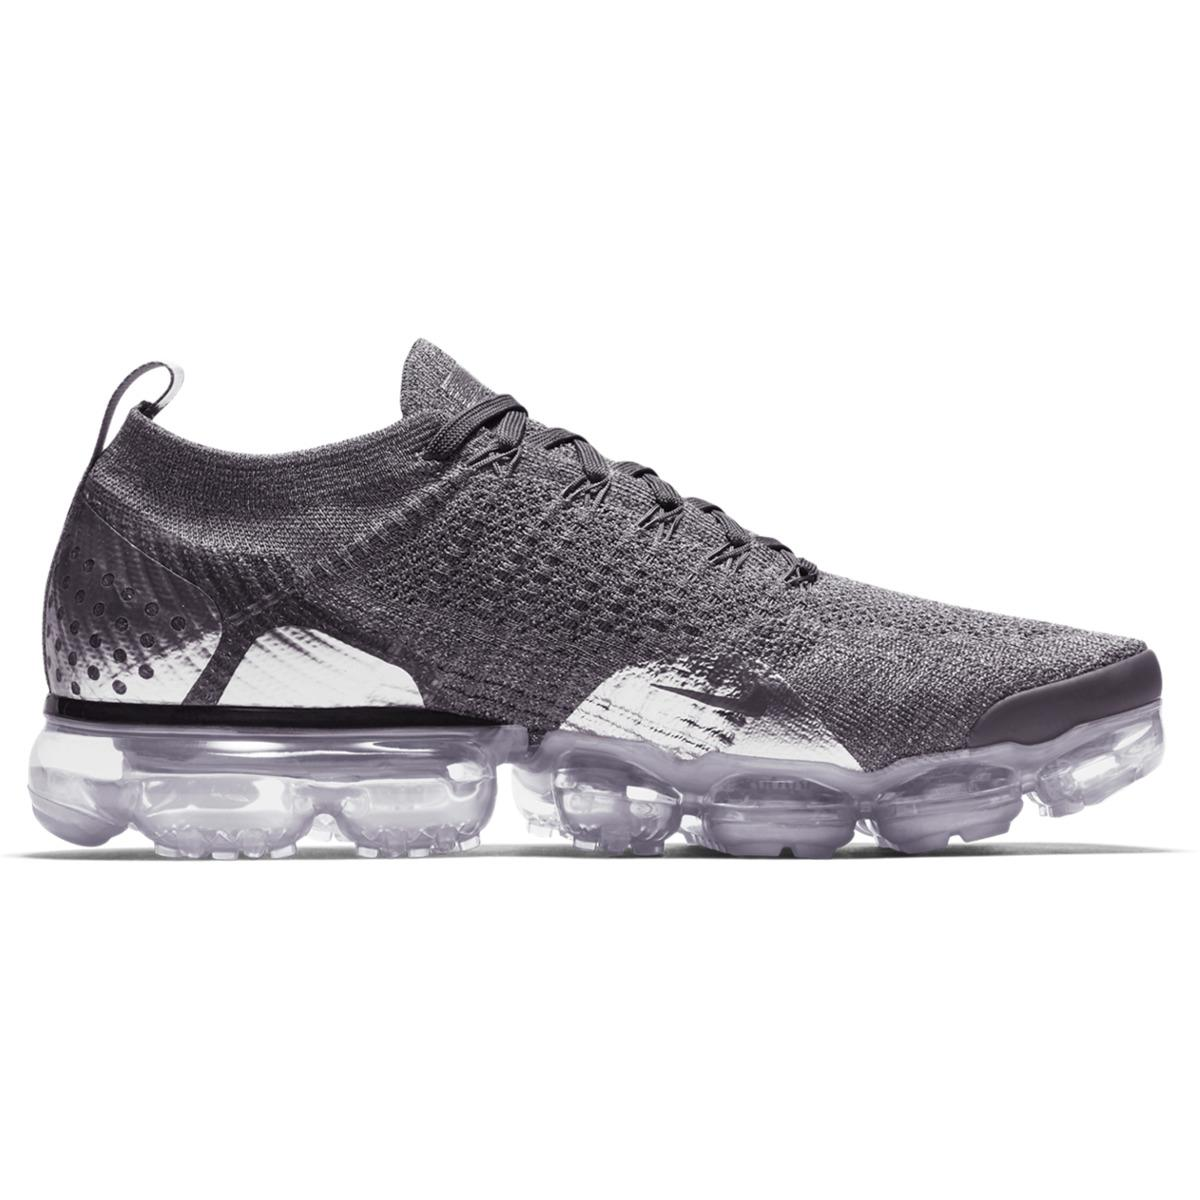 763ac0ebcd8a Nike Air Vapormax Flyknit 2 Casual Trainers in Gray for Men - Lyst